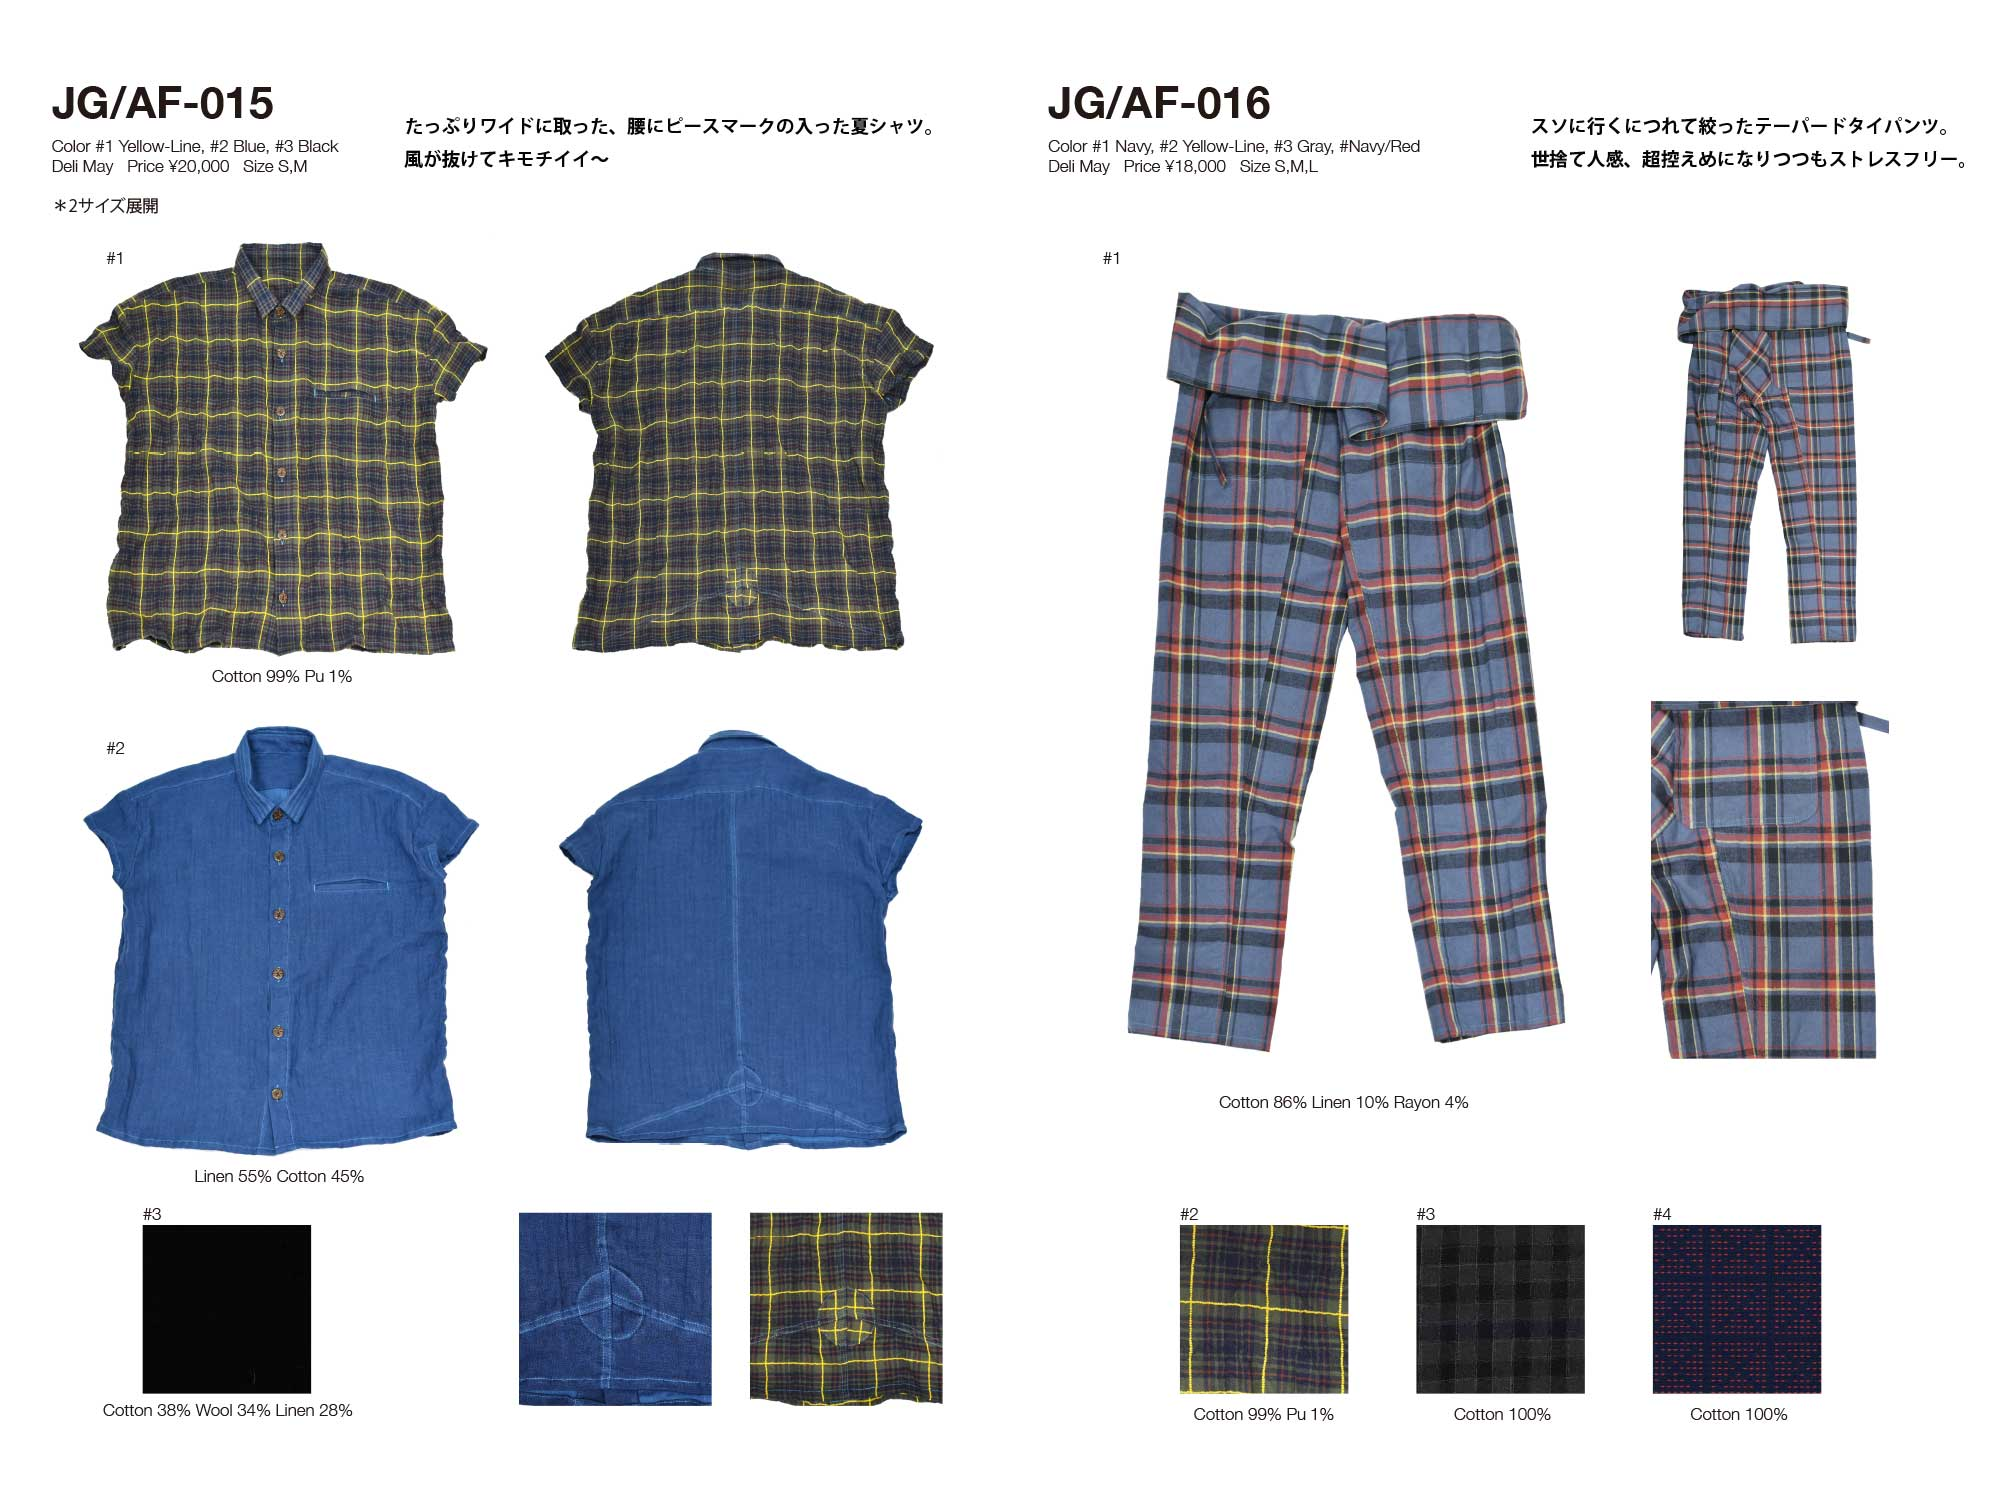 2019 Summer Capsule Collection